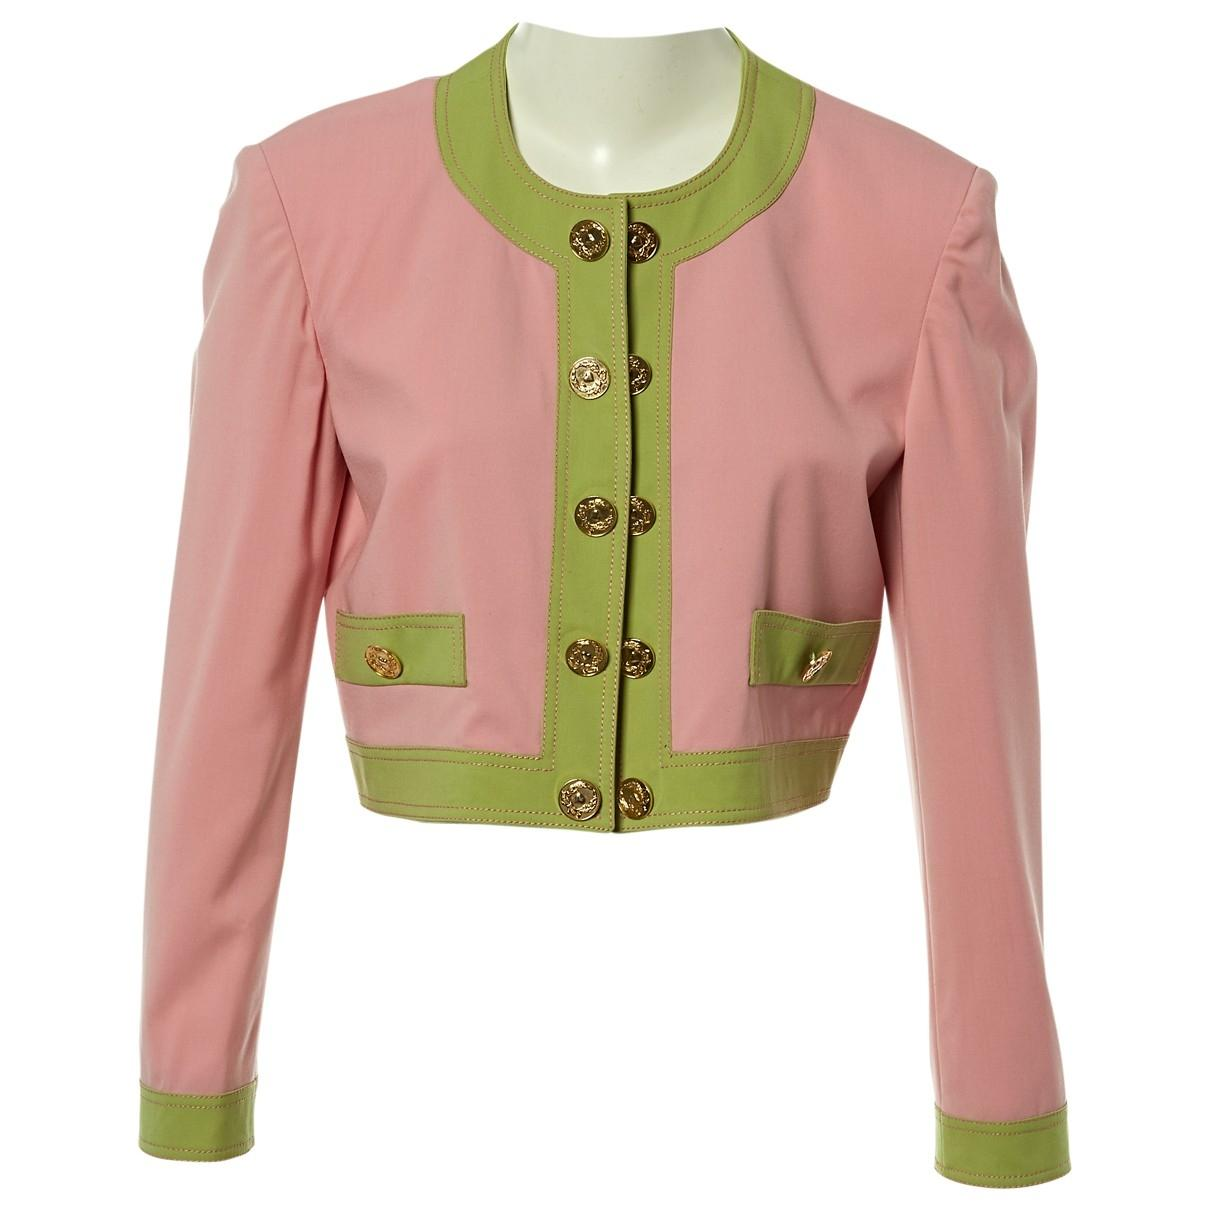 4c47278a7 Moschino. Women's Pink Wool Jacket. $195 From Vestiaire Collective